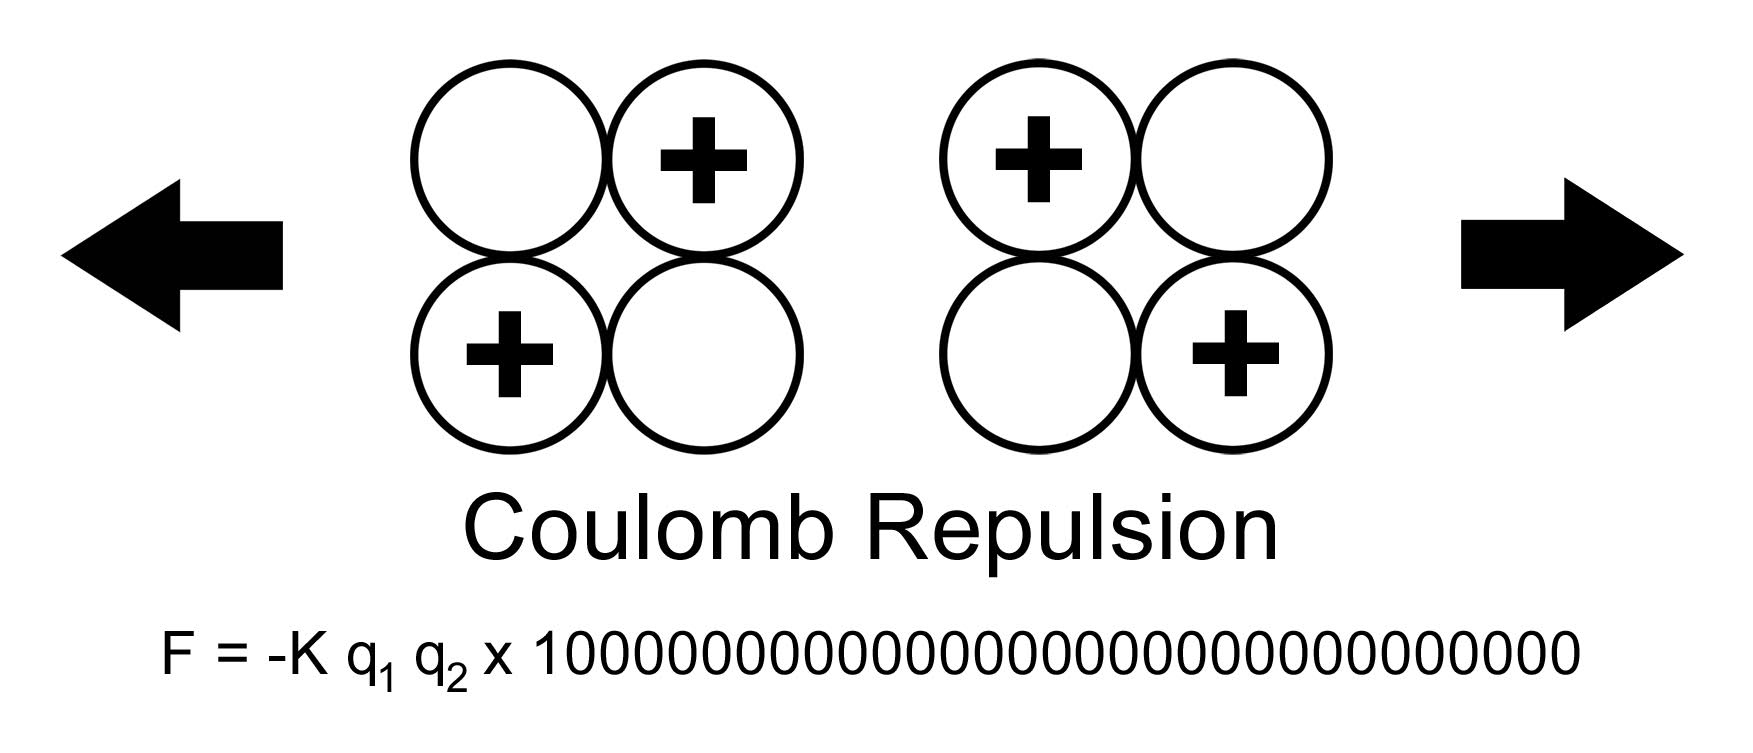 Figure 1 -   Coulomb repulsion that acquires astronomical values at the nuclear distance  needed for the fusion - pseudoprotons and pseudonuclei